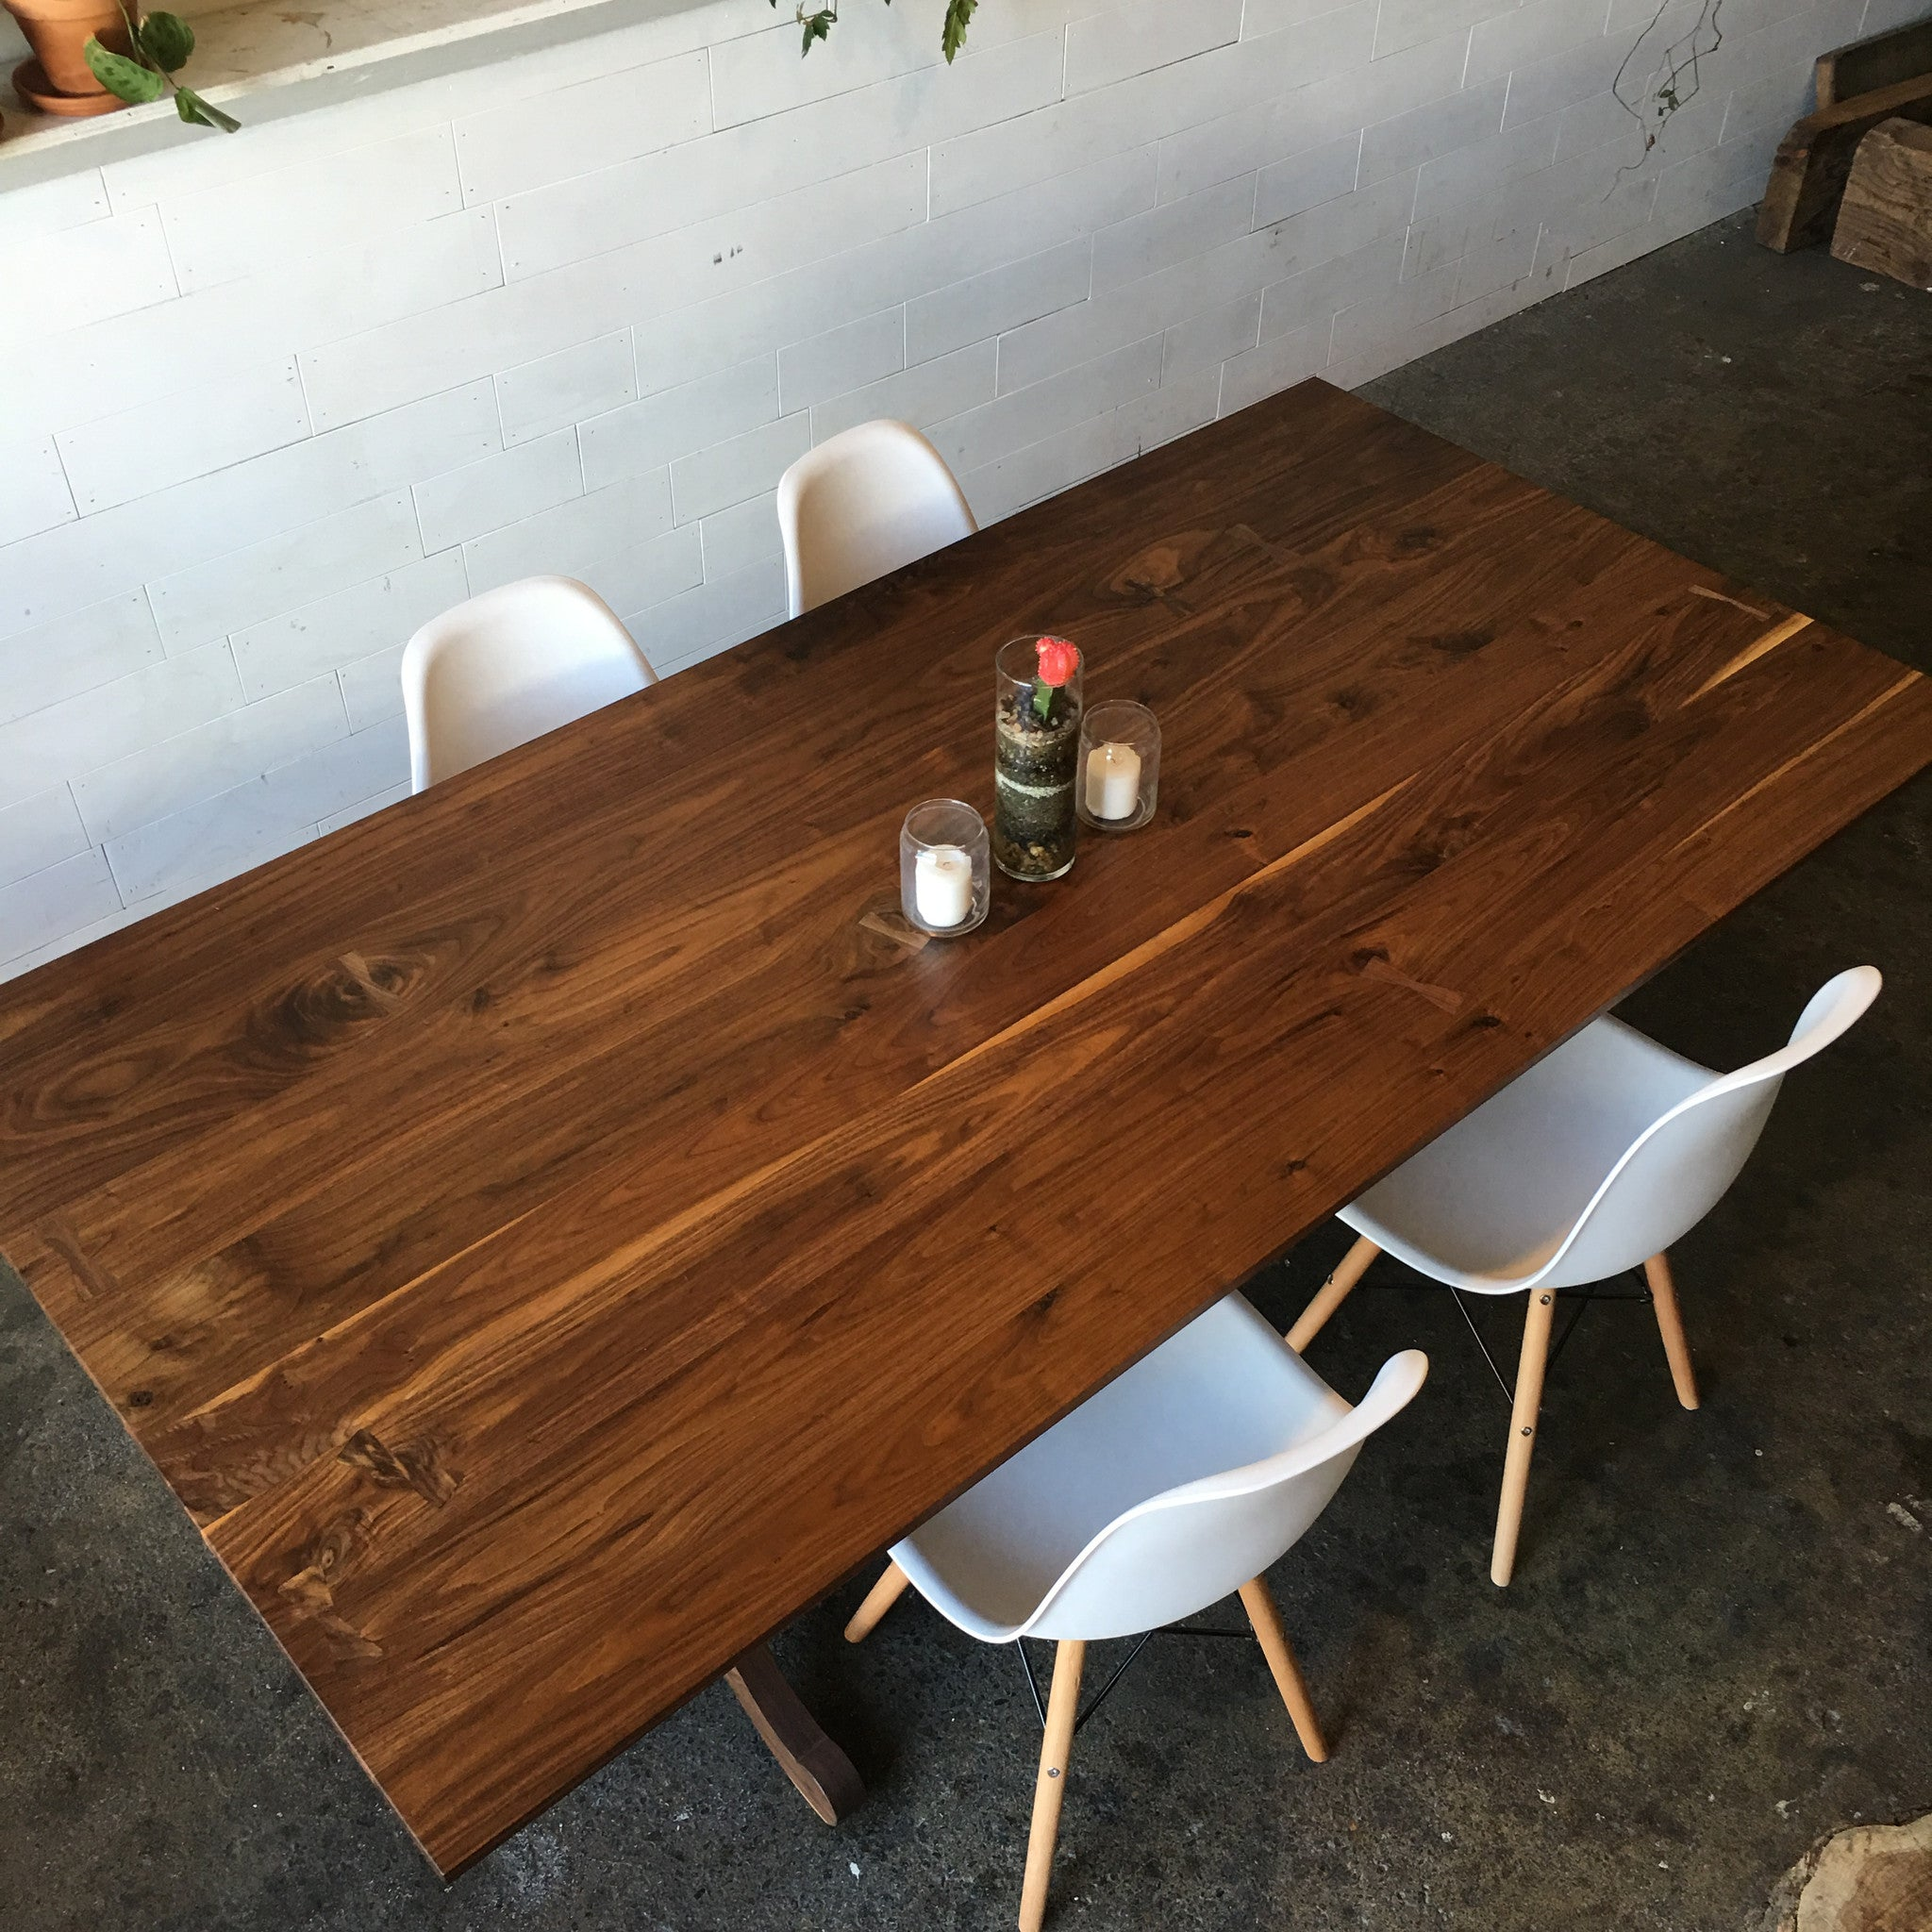 Duboce Ave Modern American Dining Table - JeremiahCollection - 3